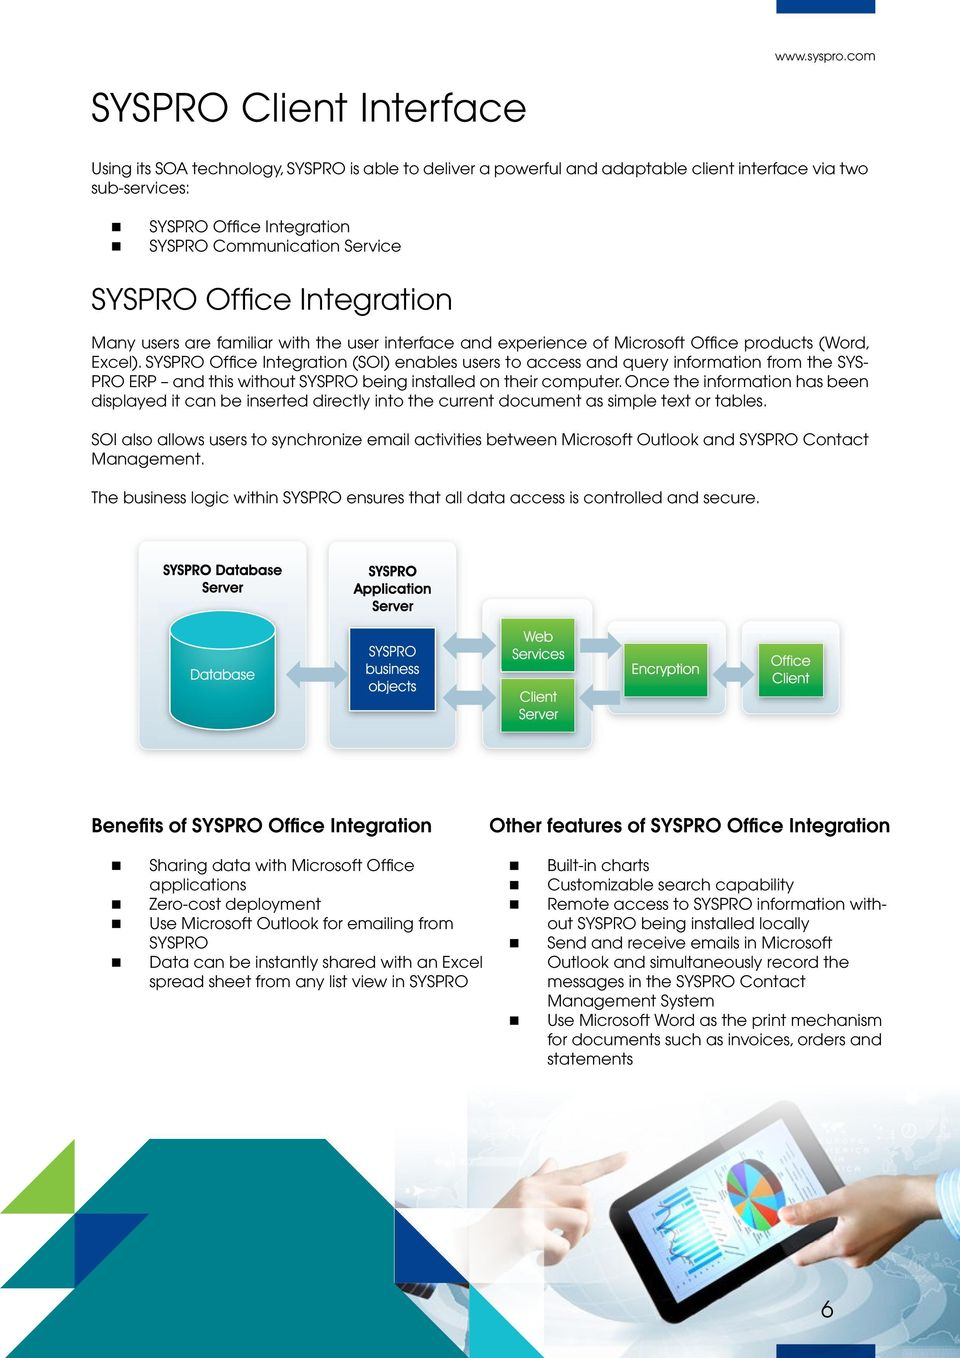 SYSPRO Office Integration (SOI) enables users to access and query information from the SYS- PRO ERP and this without SYSPRO being installed on their computer.